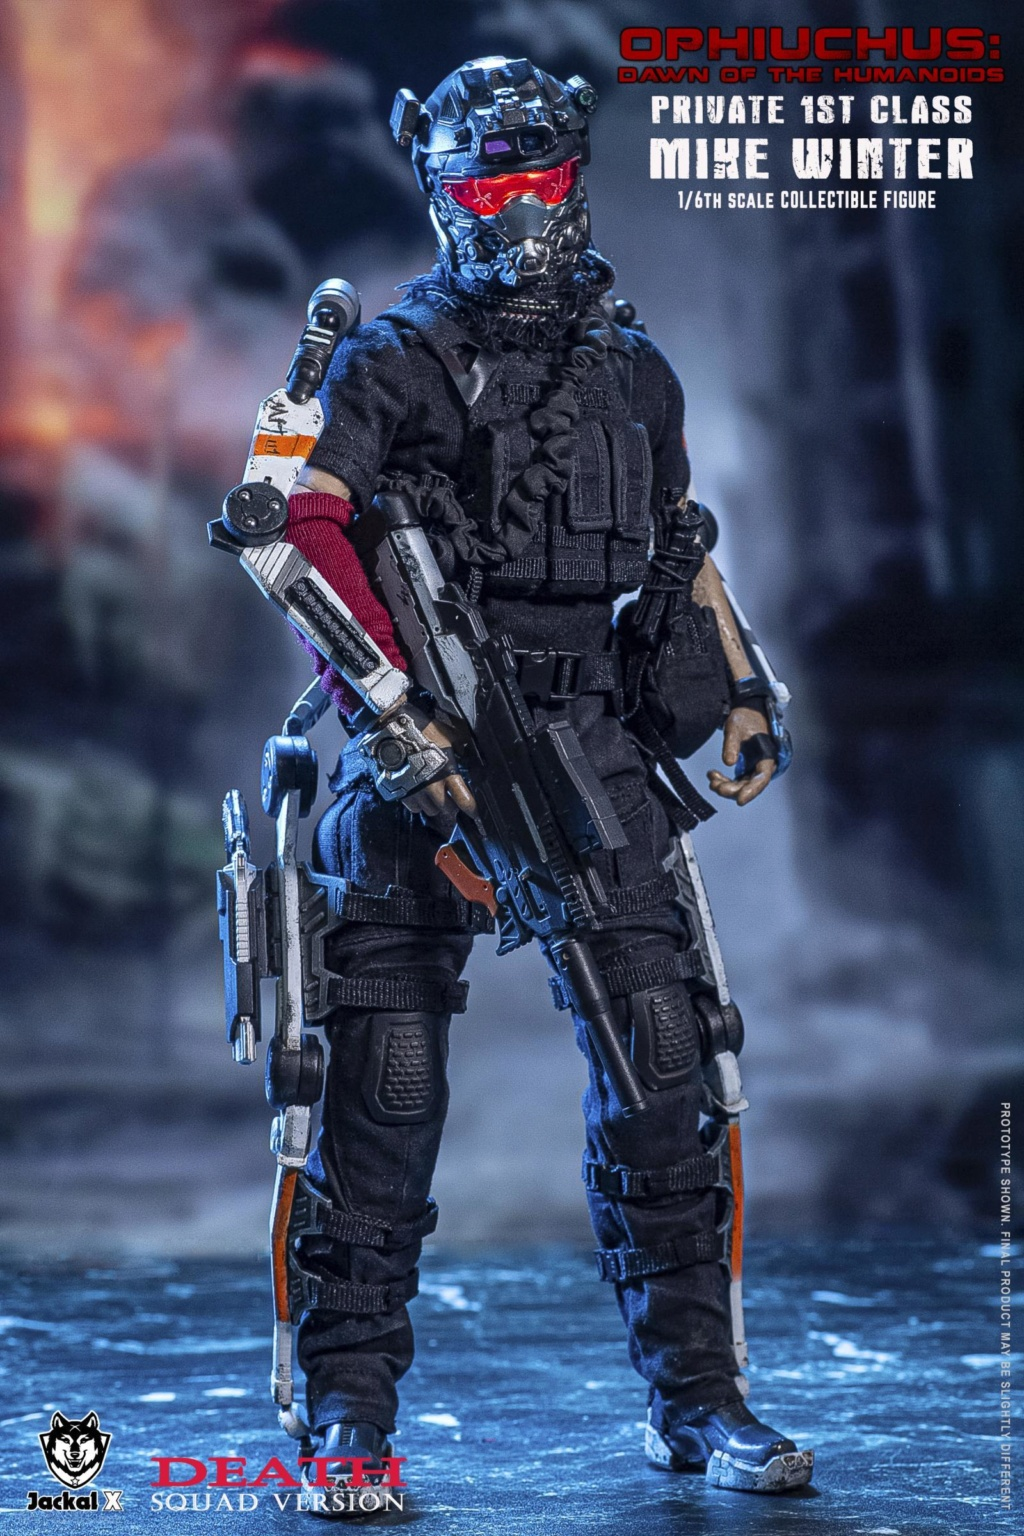 DawnOfHumanoid - NEW PRODUCT: JackalX: 1/6 Ophiuchus: Dawn of Humanoid: Private 1st Class Mike Winter Collectible Figure (2 Versions) 43202039